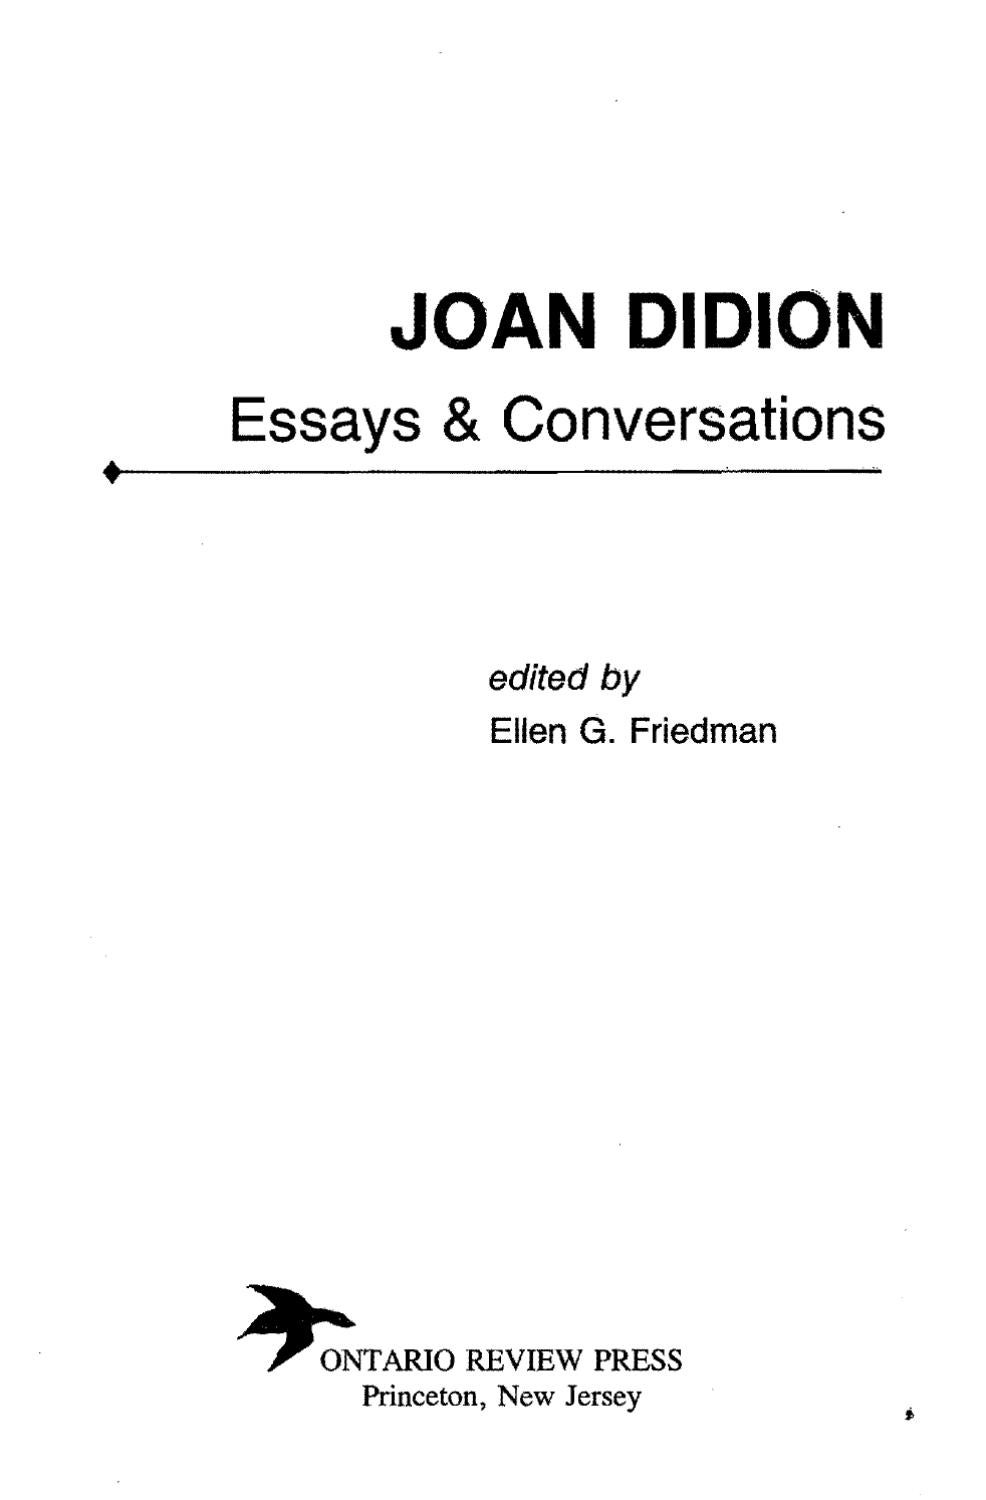 joan didion essays and conversations by cillian murphy issuu